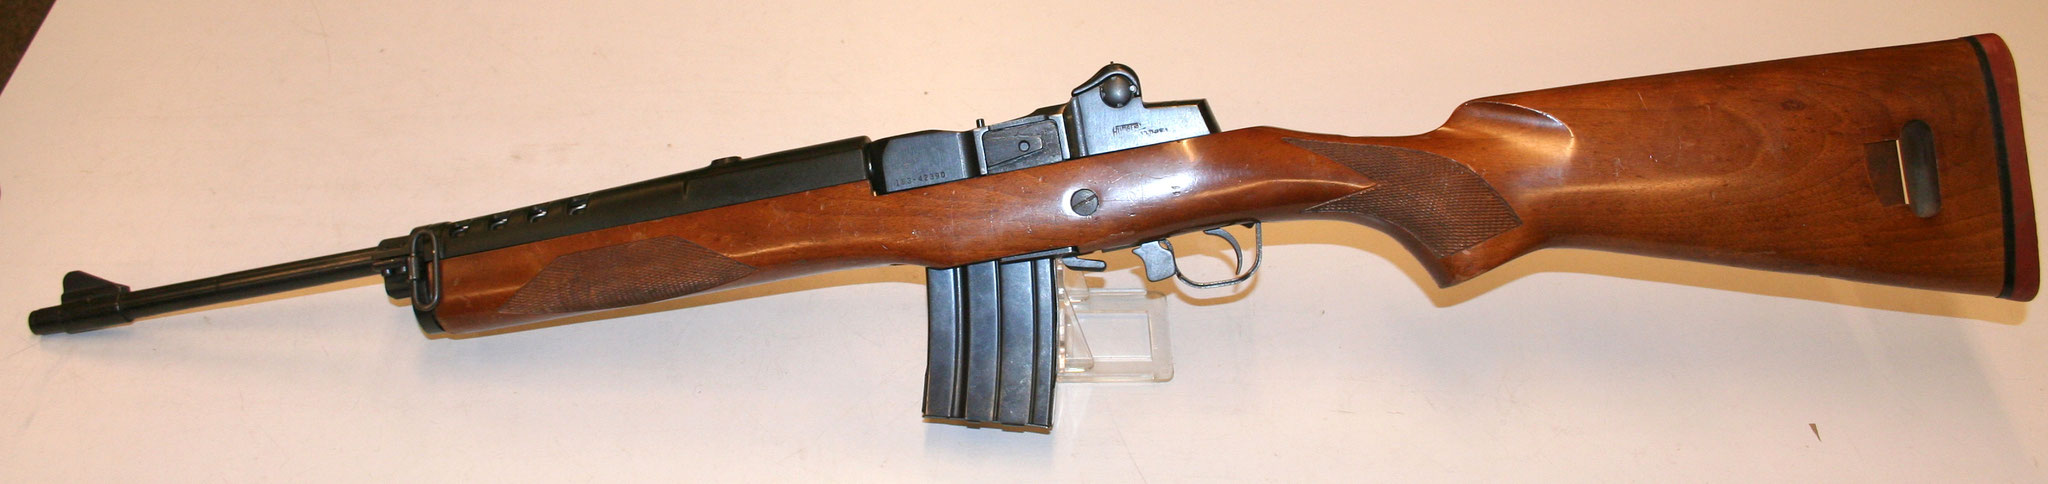 Ruger Mini 14   Mousqueton AMD. € 450,-